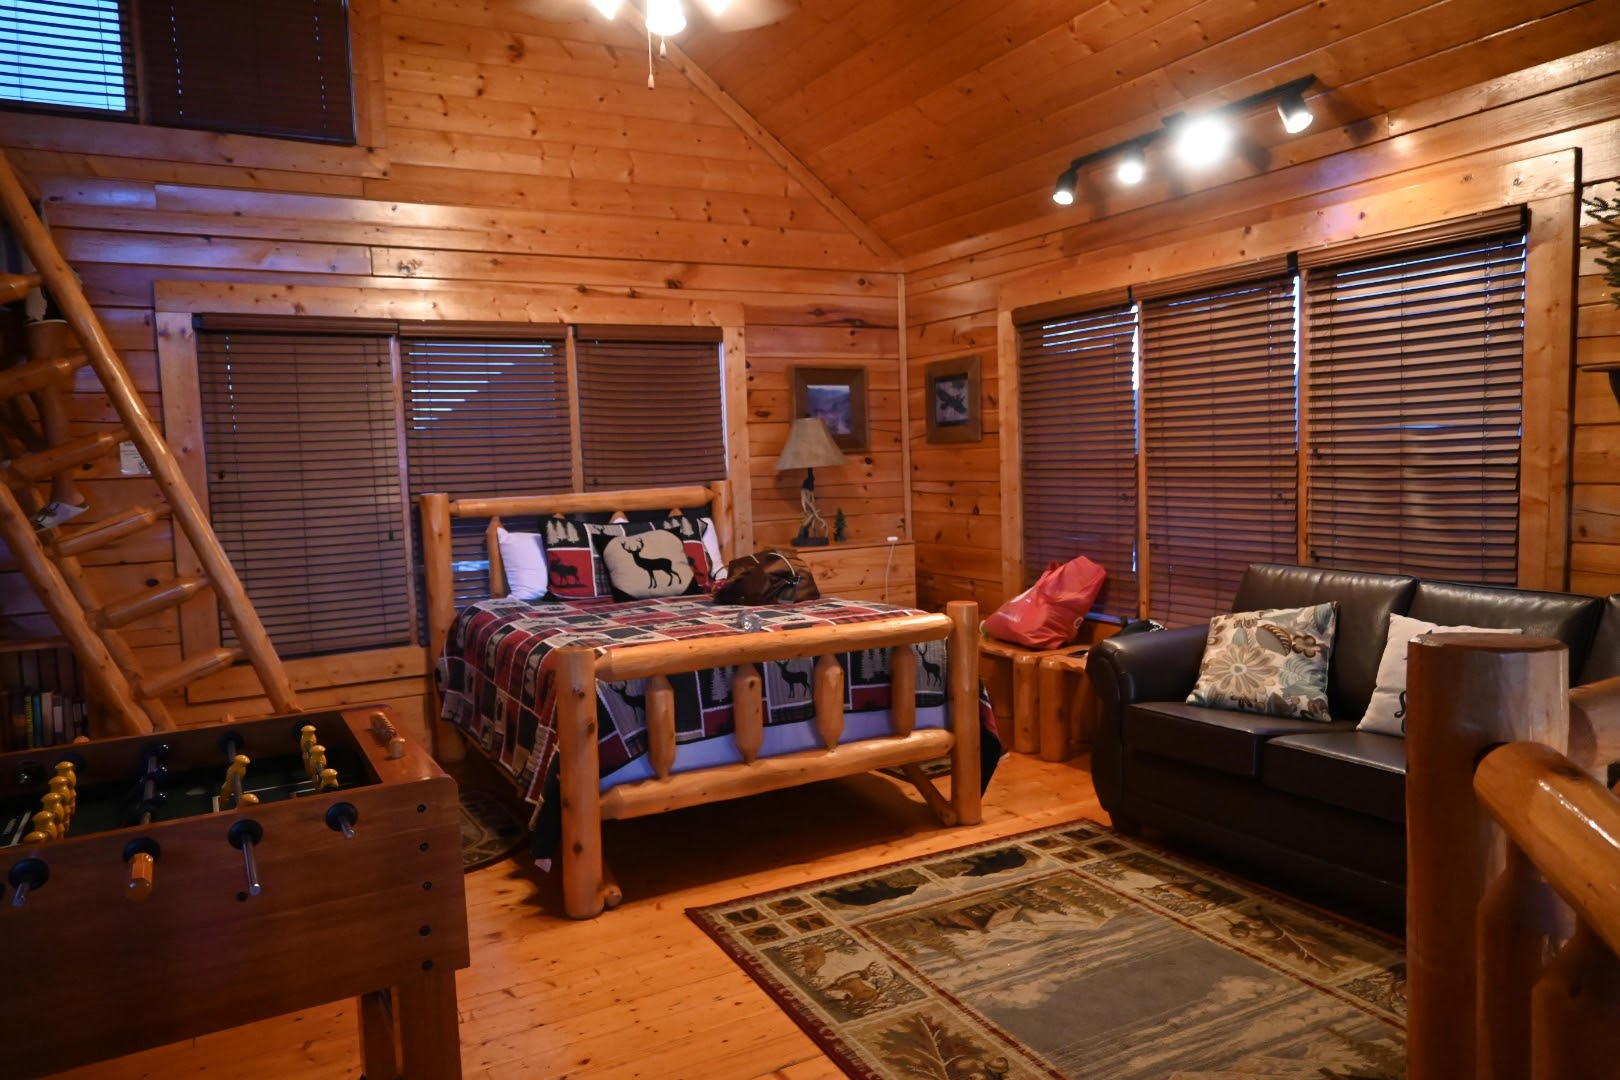 Staying in a Log Cabin in Sevierville, TN